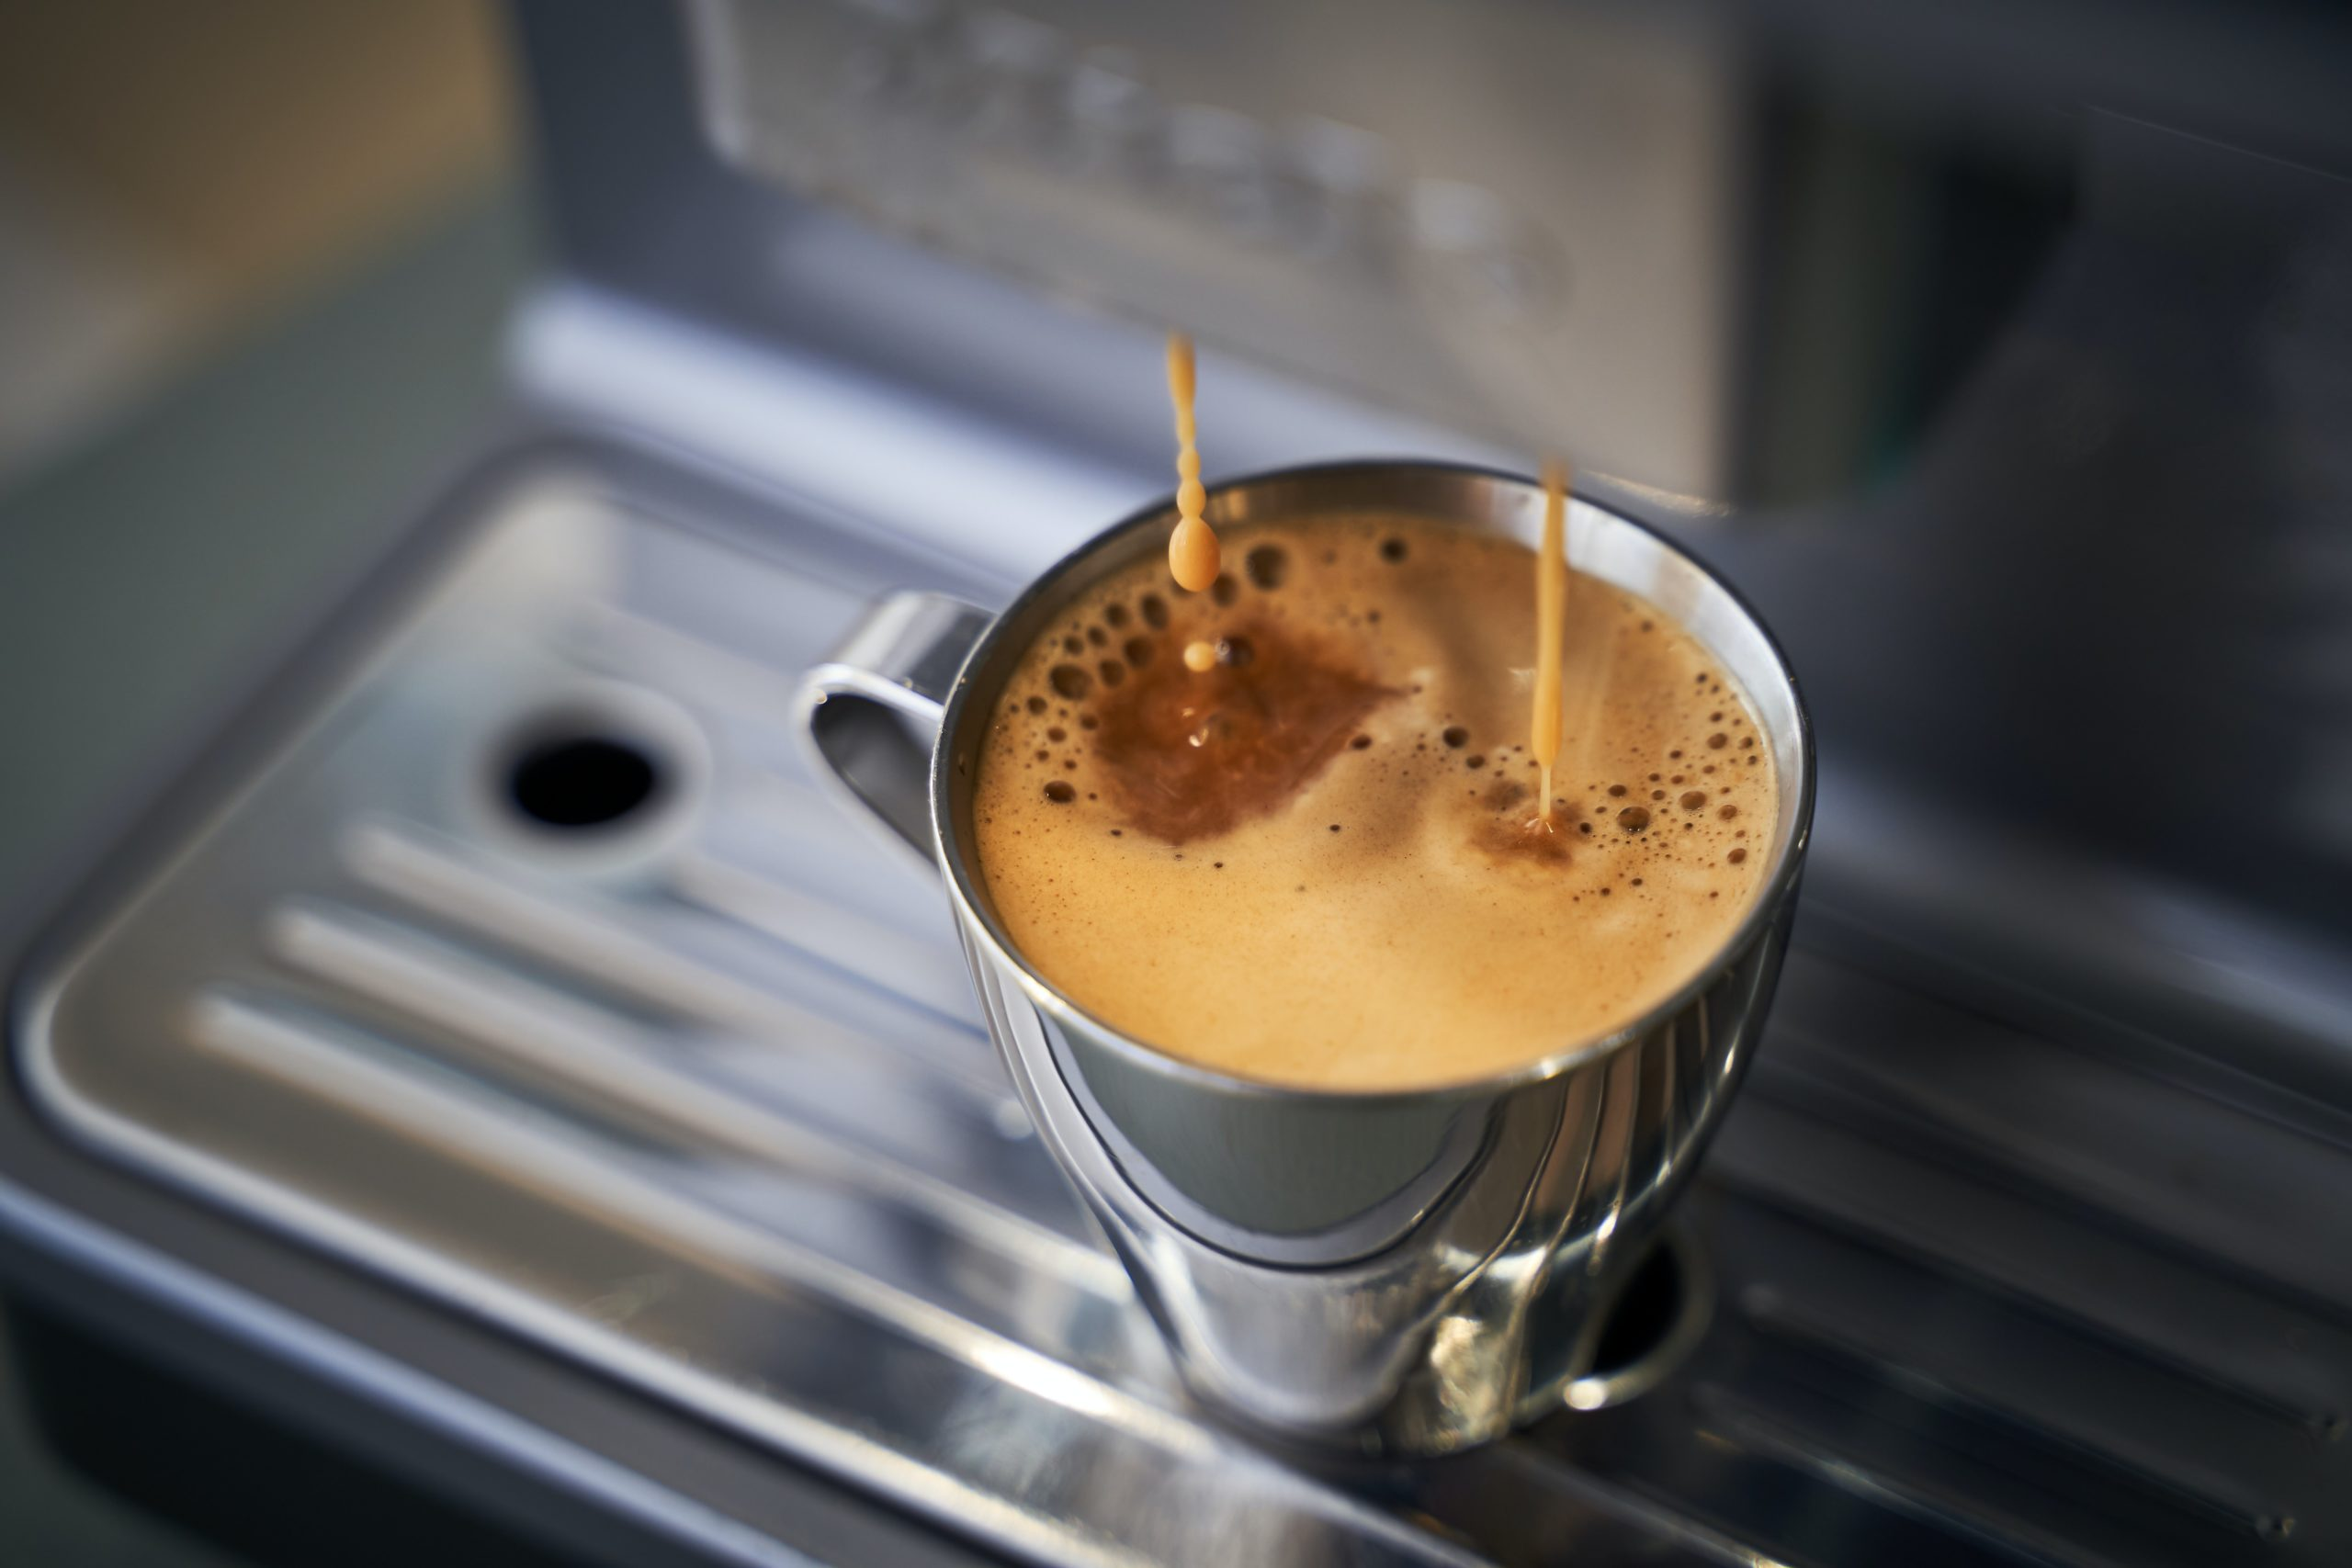 coffee being extracted into a stainless steel cup